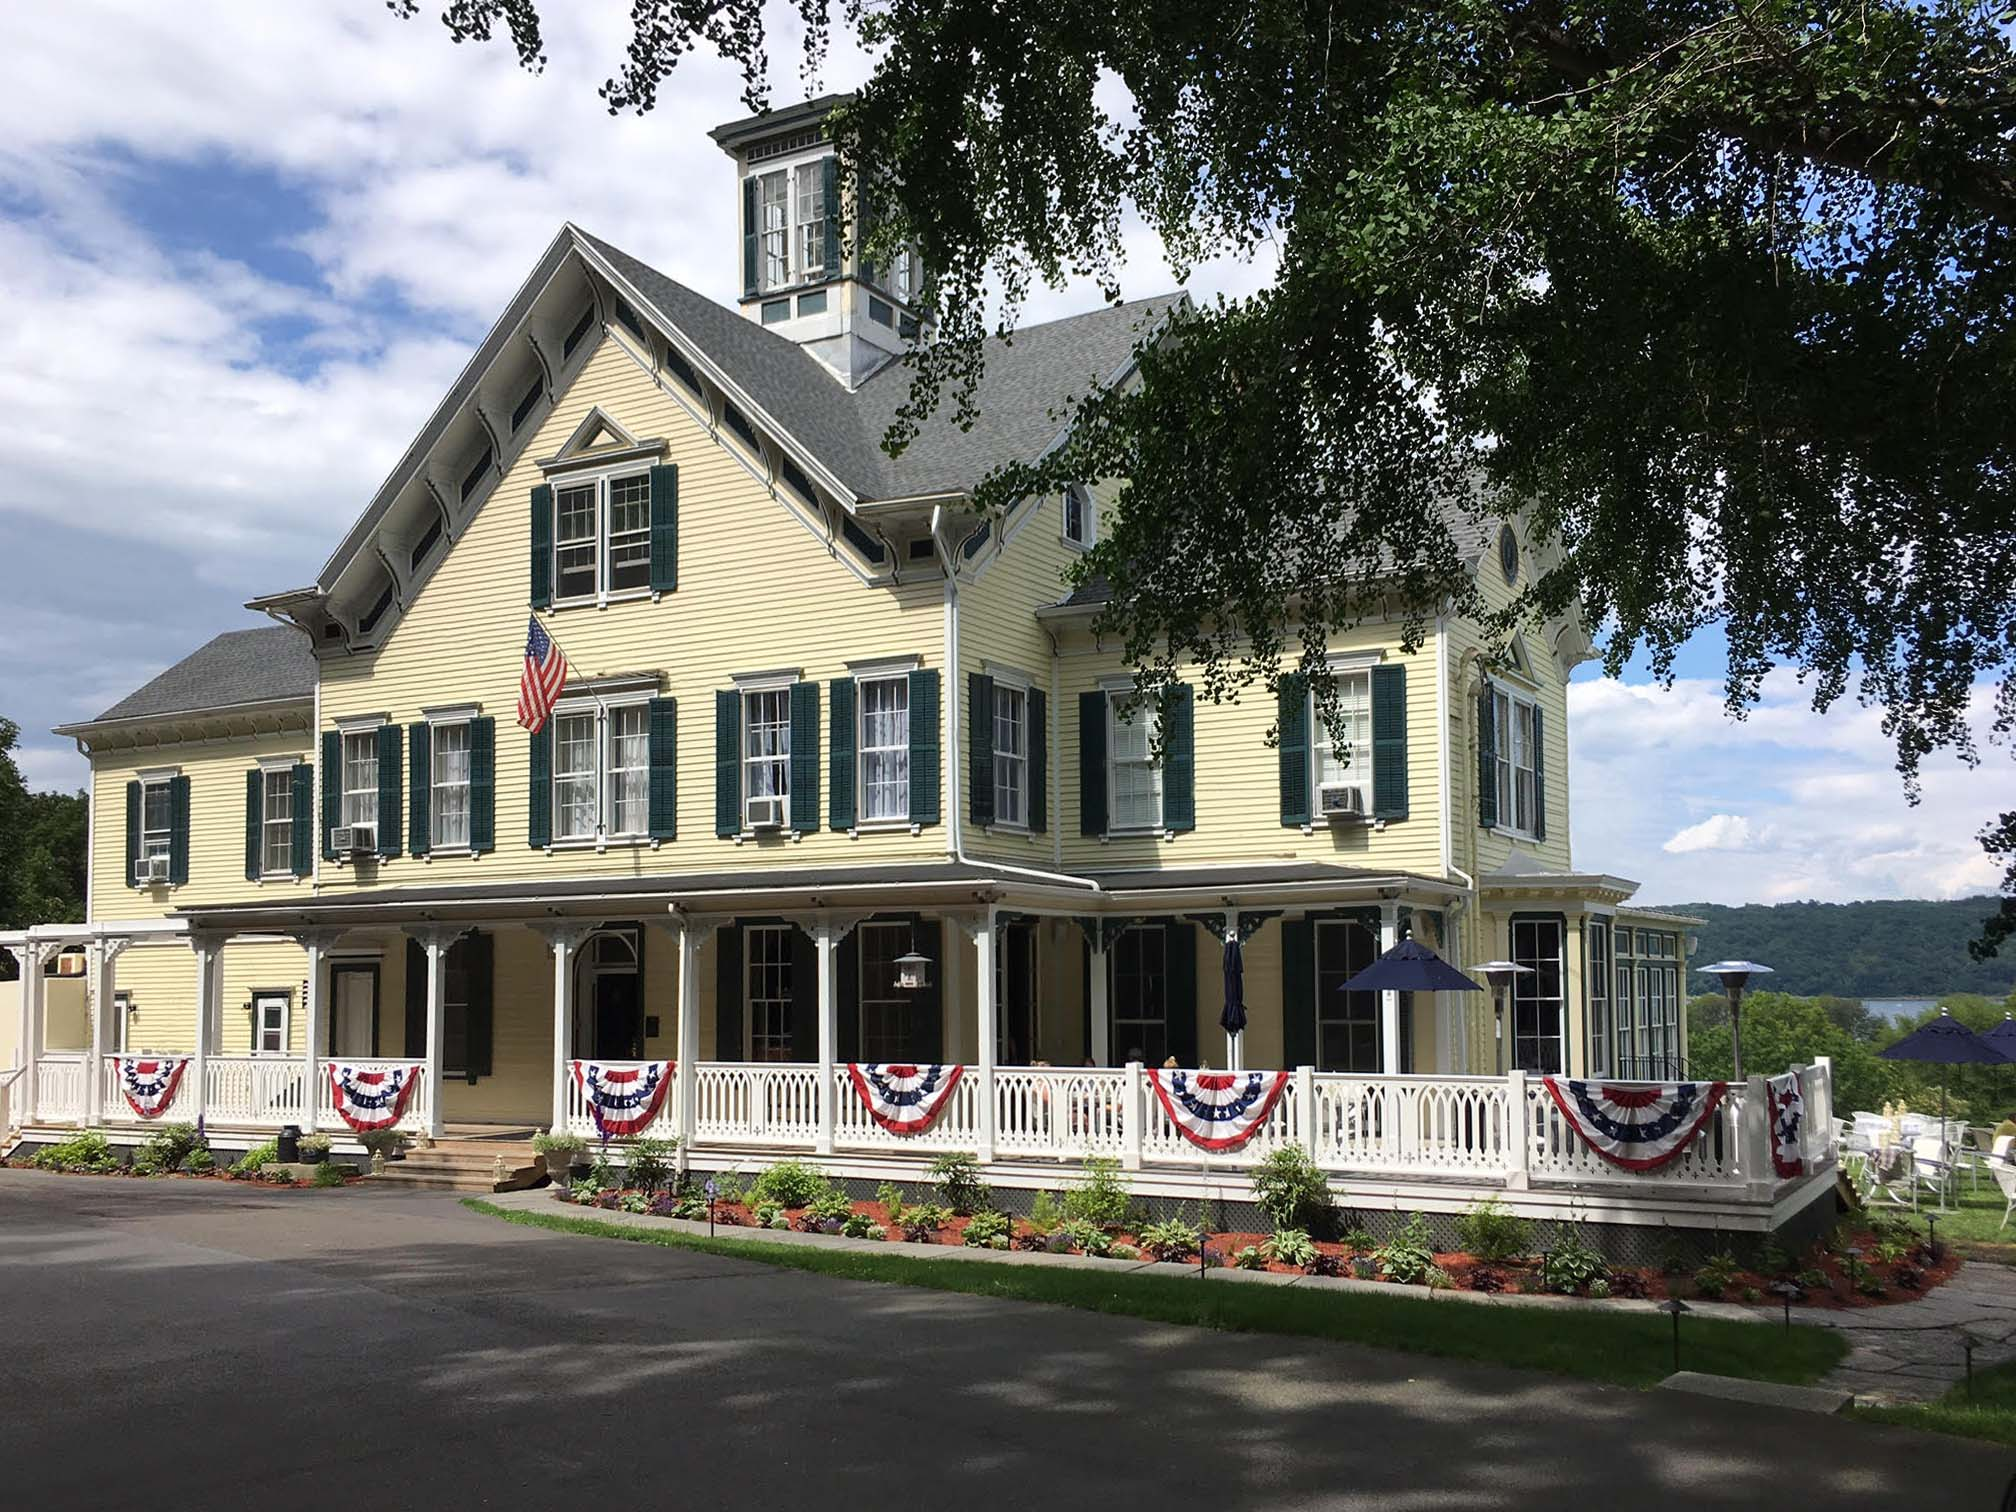 Cayuga Lake Hotel & Inn